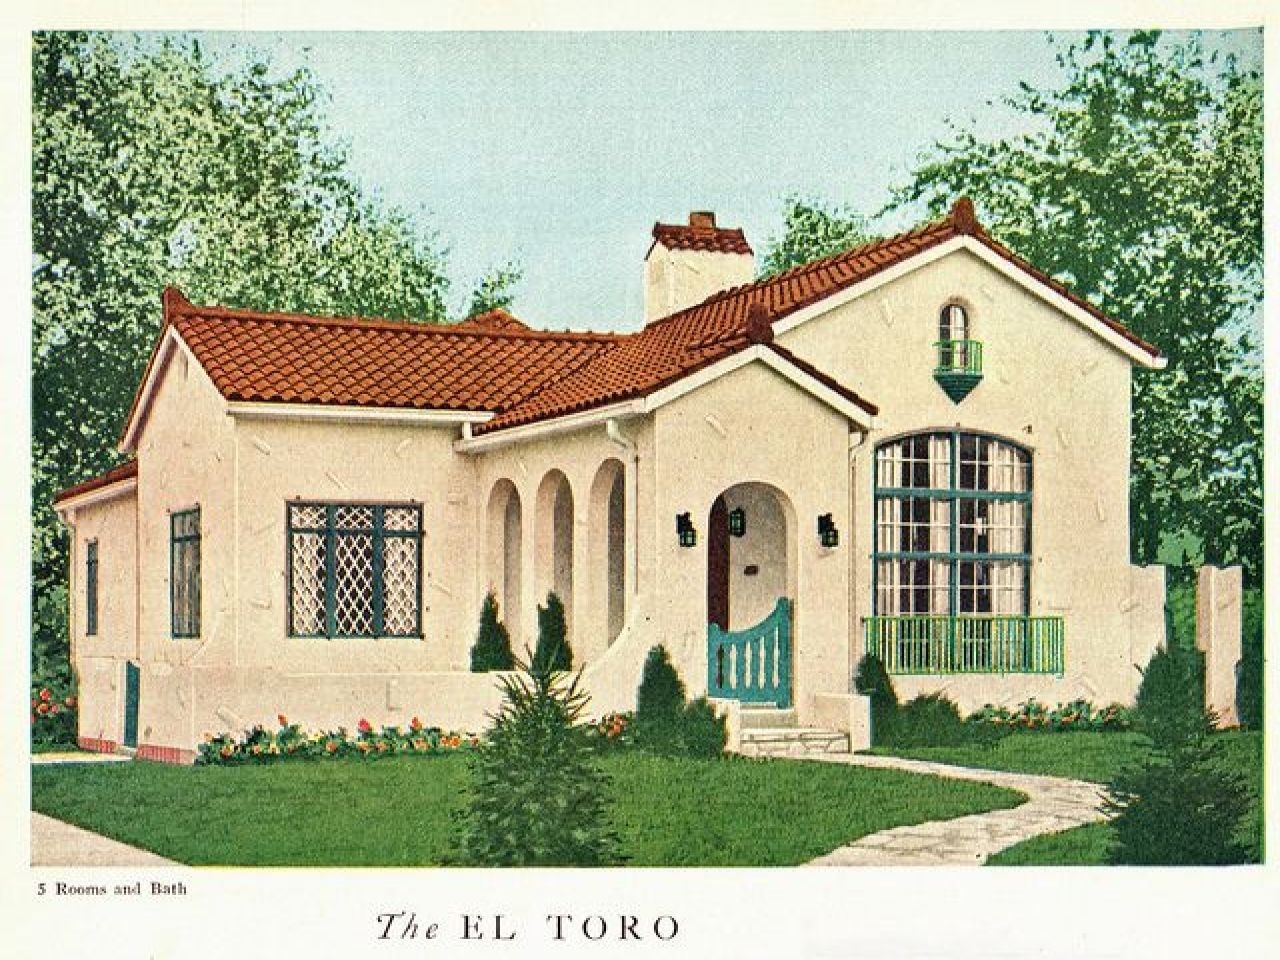 Spanish Style Bungalow Google Search Dream Home Pinterest Spanish Style Cottages Lrg Dde7037d40dd6316 Spanish Revival Home Spanish Bungalow Spanish Style Homes